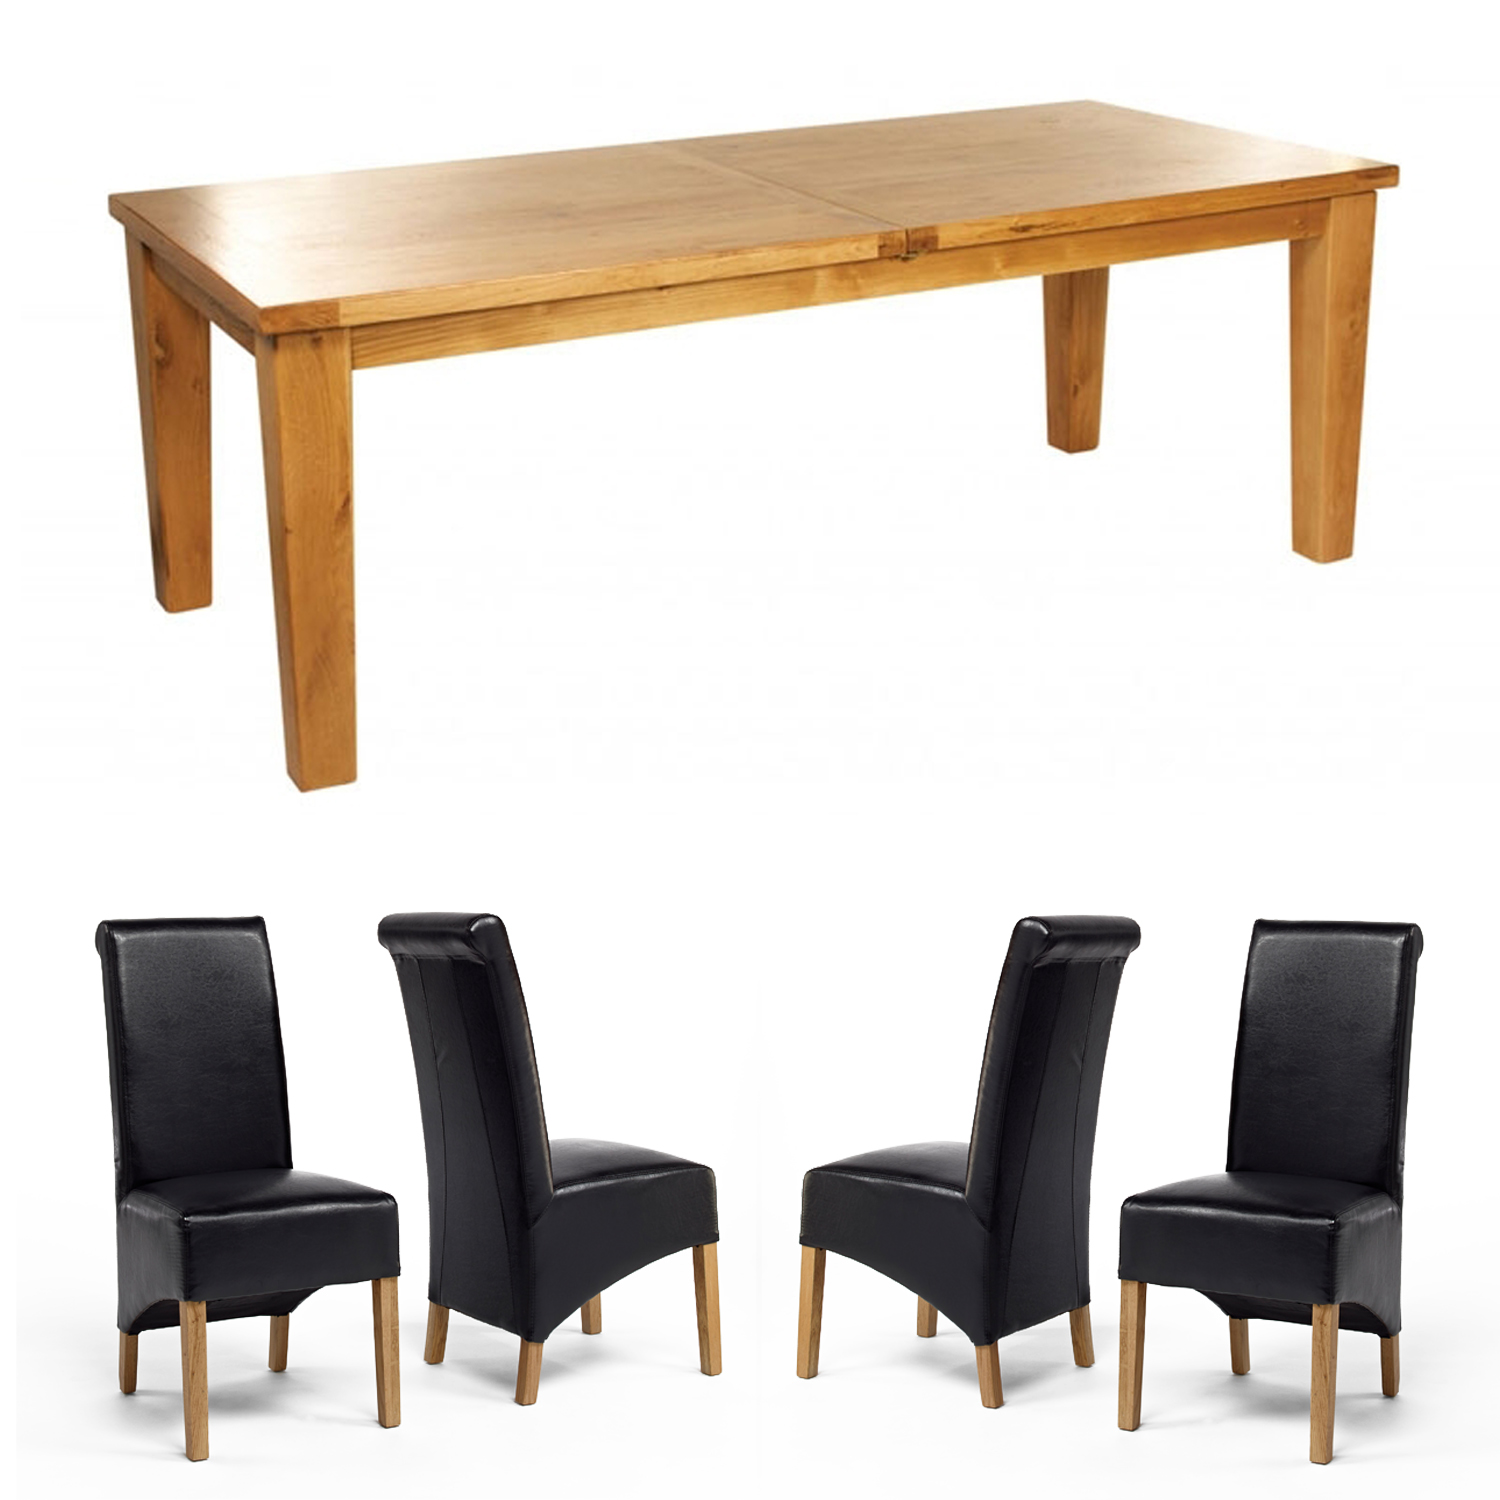 Chiltern Grand Oak Extending Dining Table - 2200-2700mm + 8 or 10 Sherwood Rollback Black Dining Chairs (10 BLK Chairs)